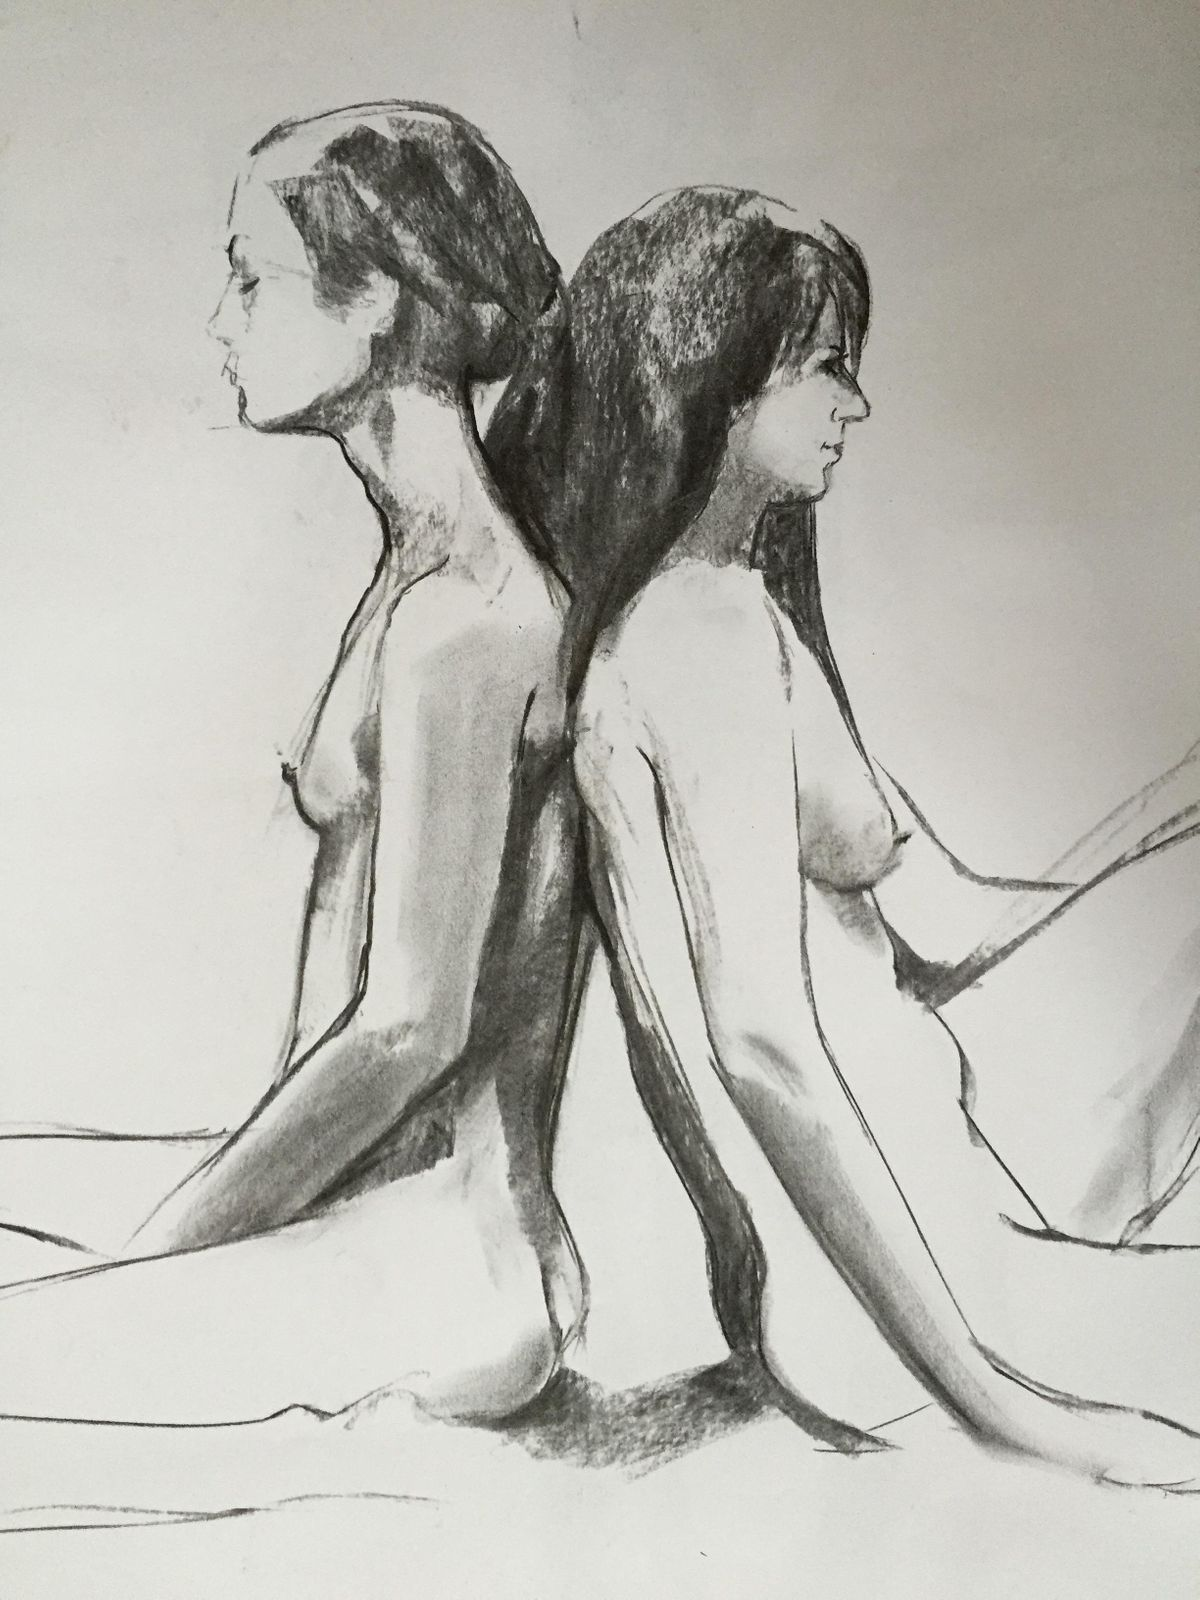 Life Drawing - Drink & Draw | Event in London | AllEvents.in